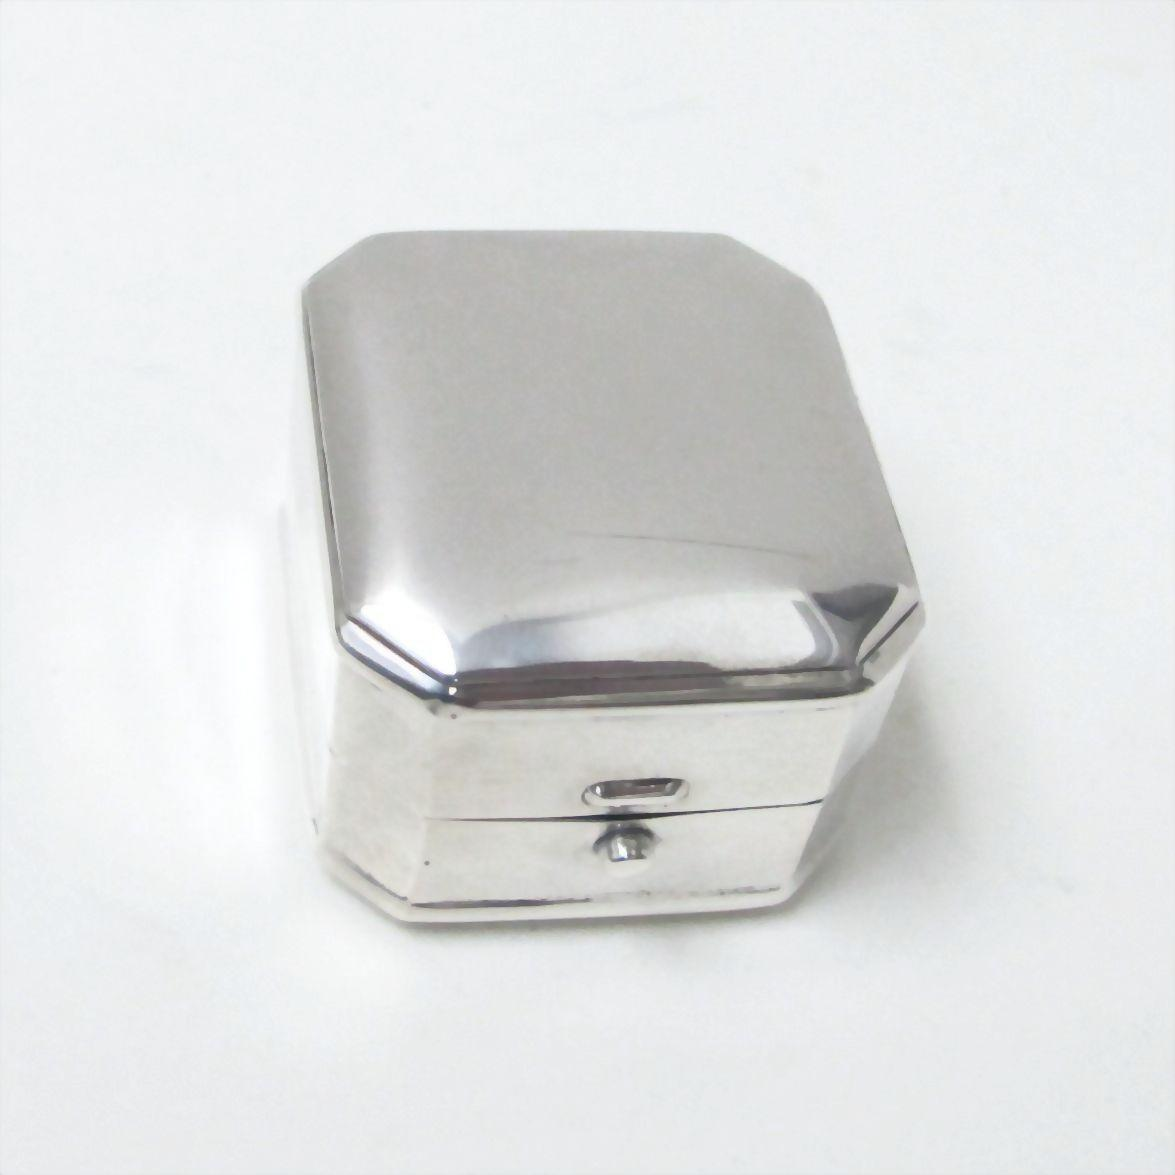 birks sterling silver ring box edwardian from luxury on